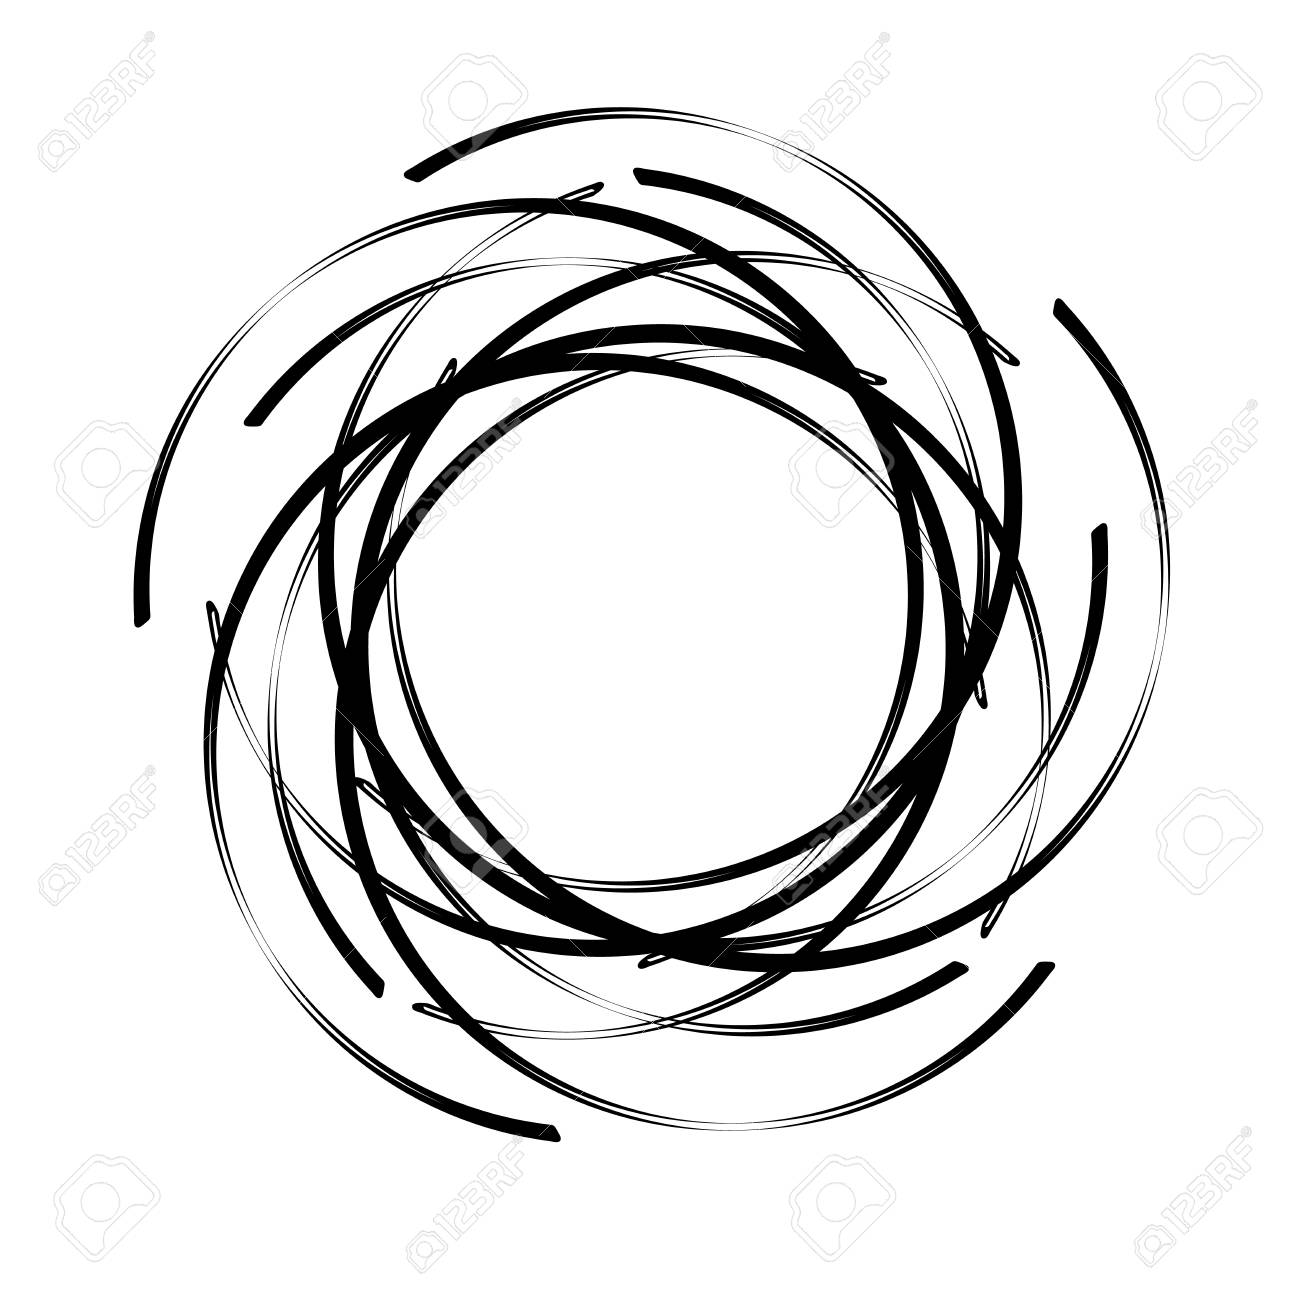 abstract round spiral template for the logo black blob to create